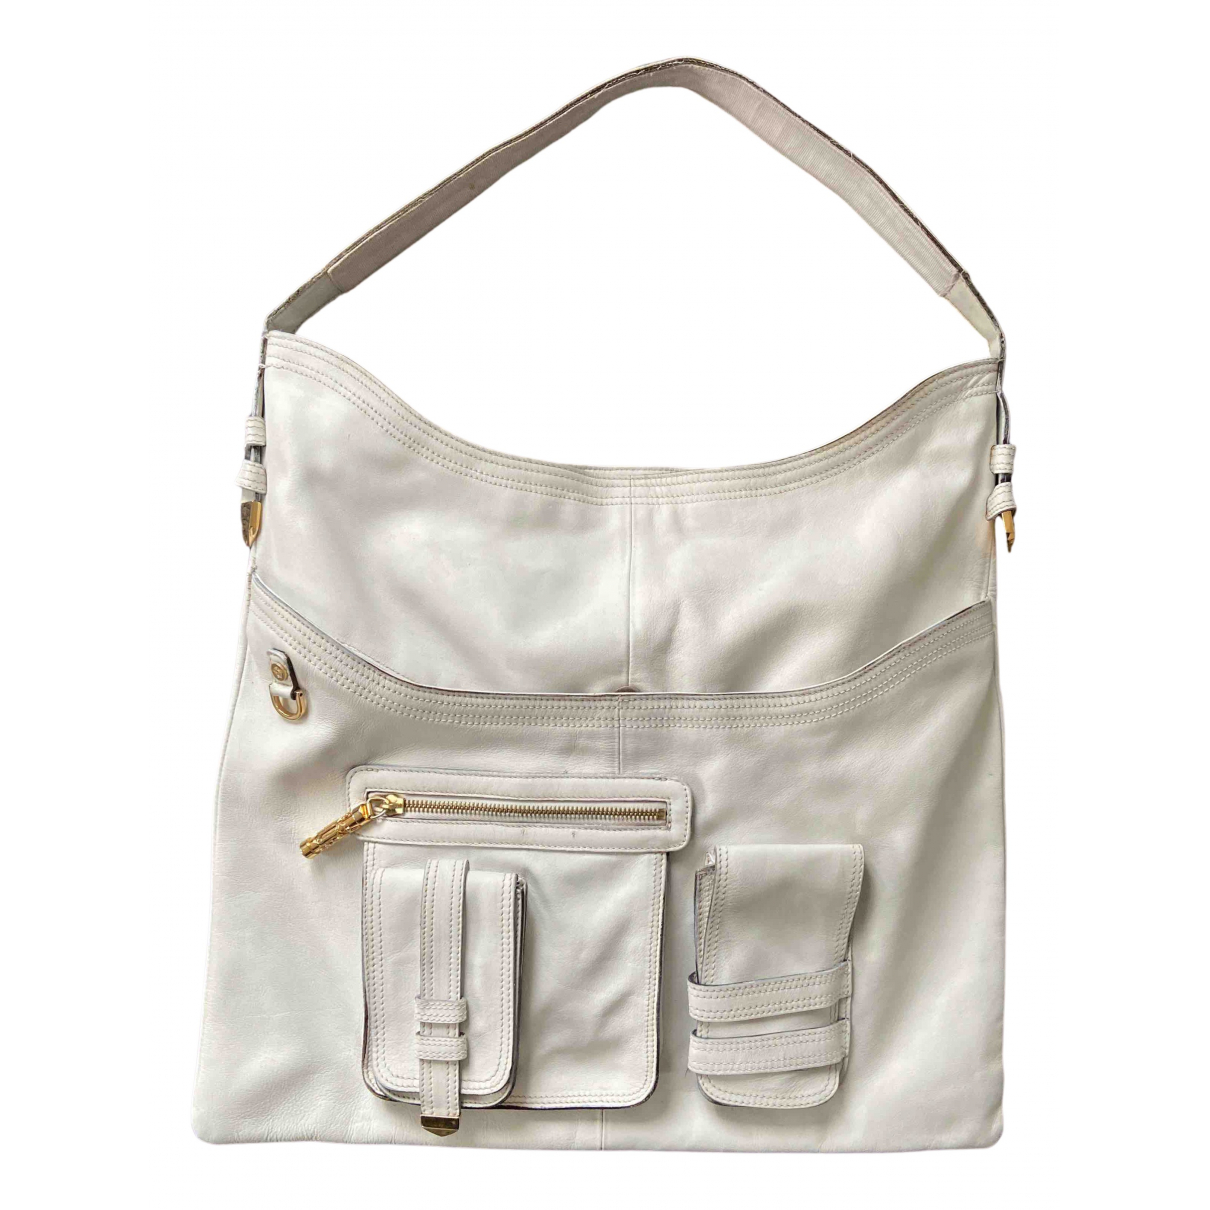 Versace N White Leather handbag for Women N